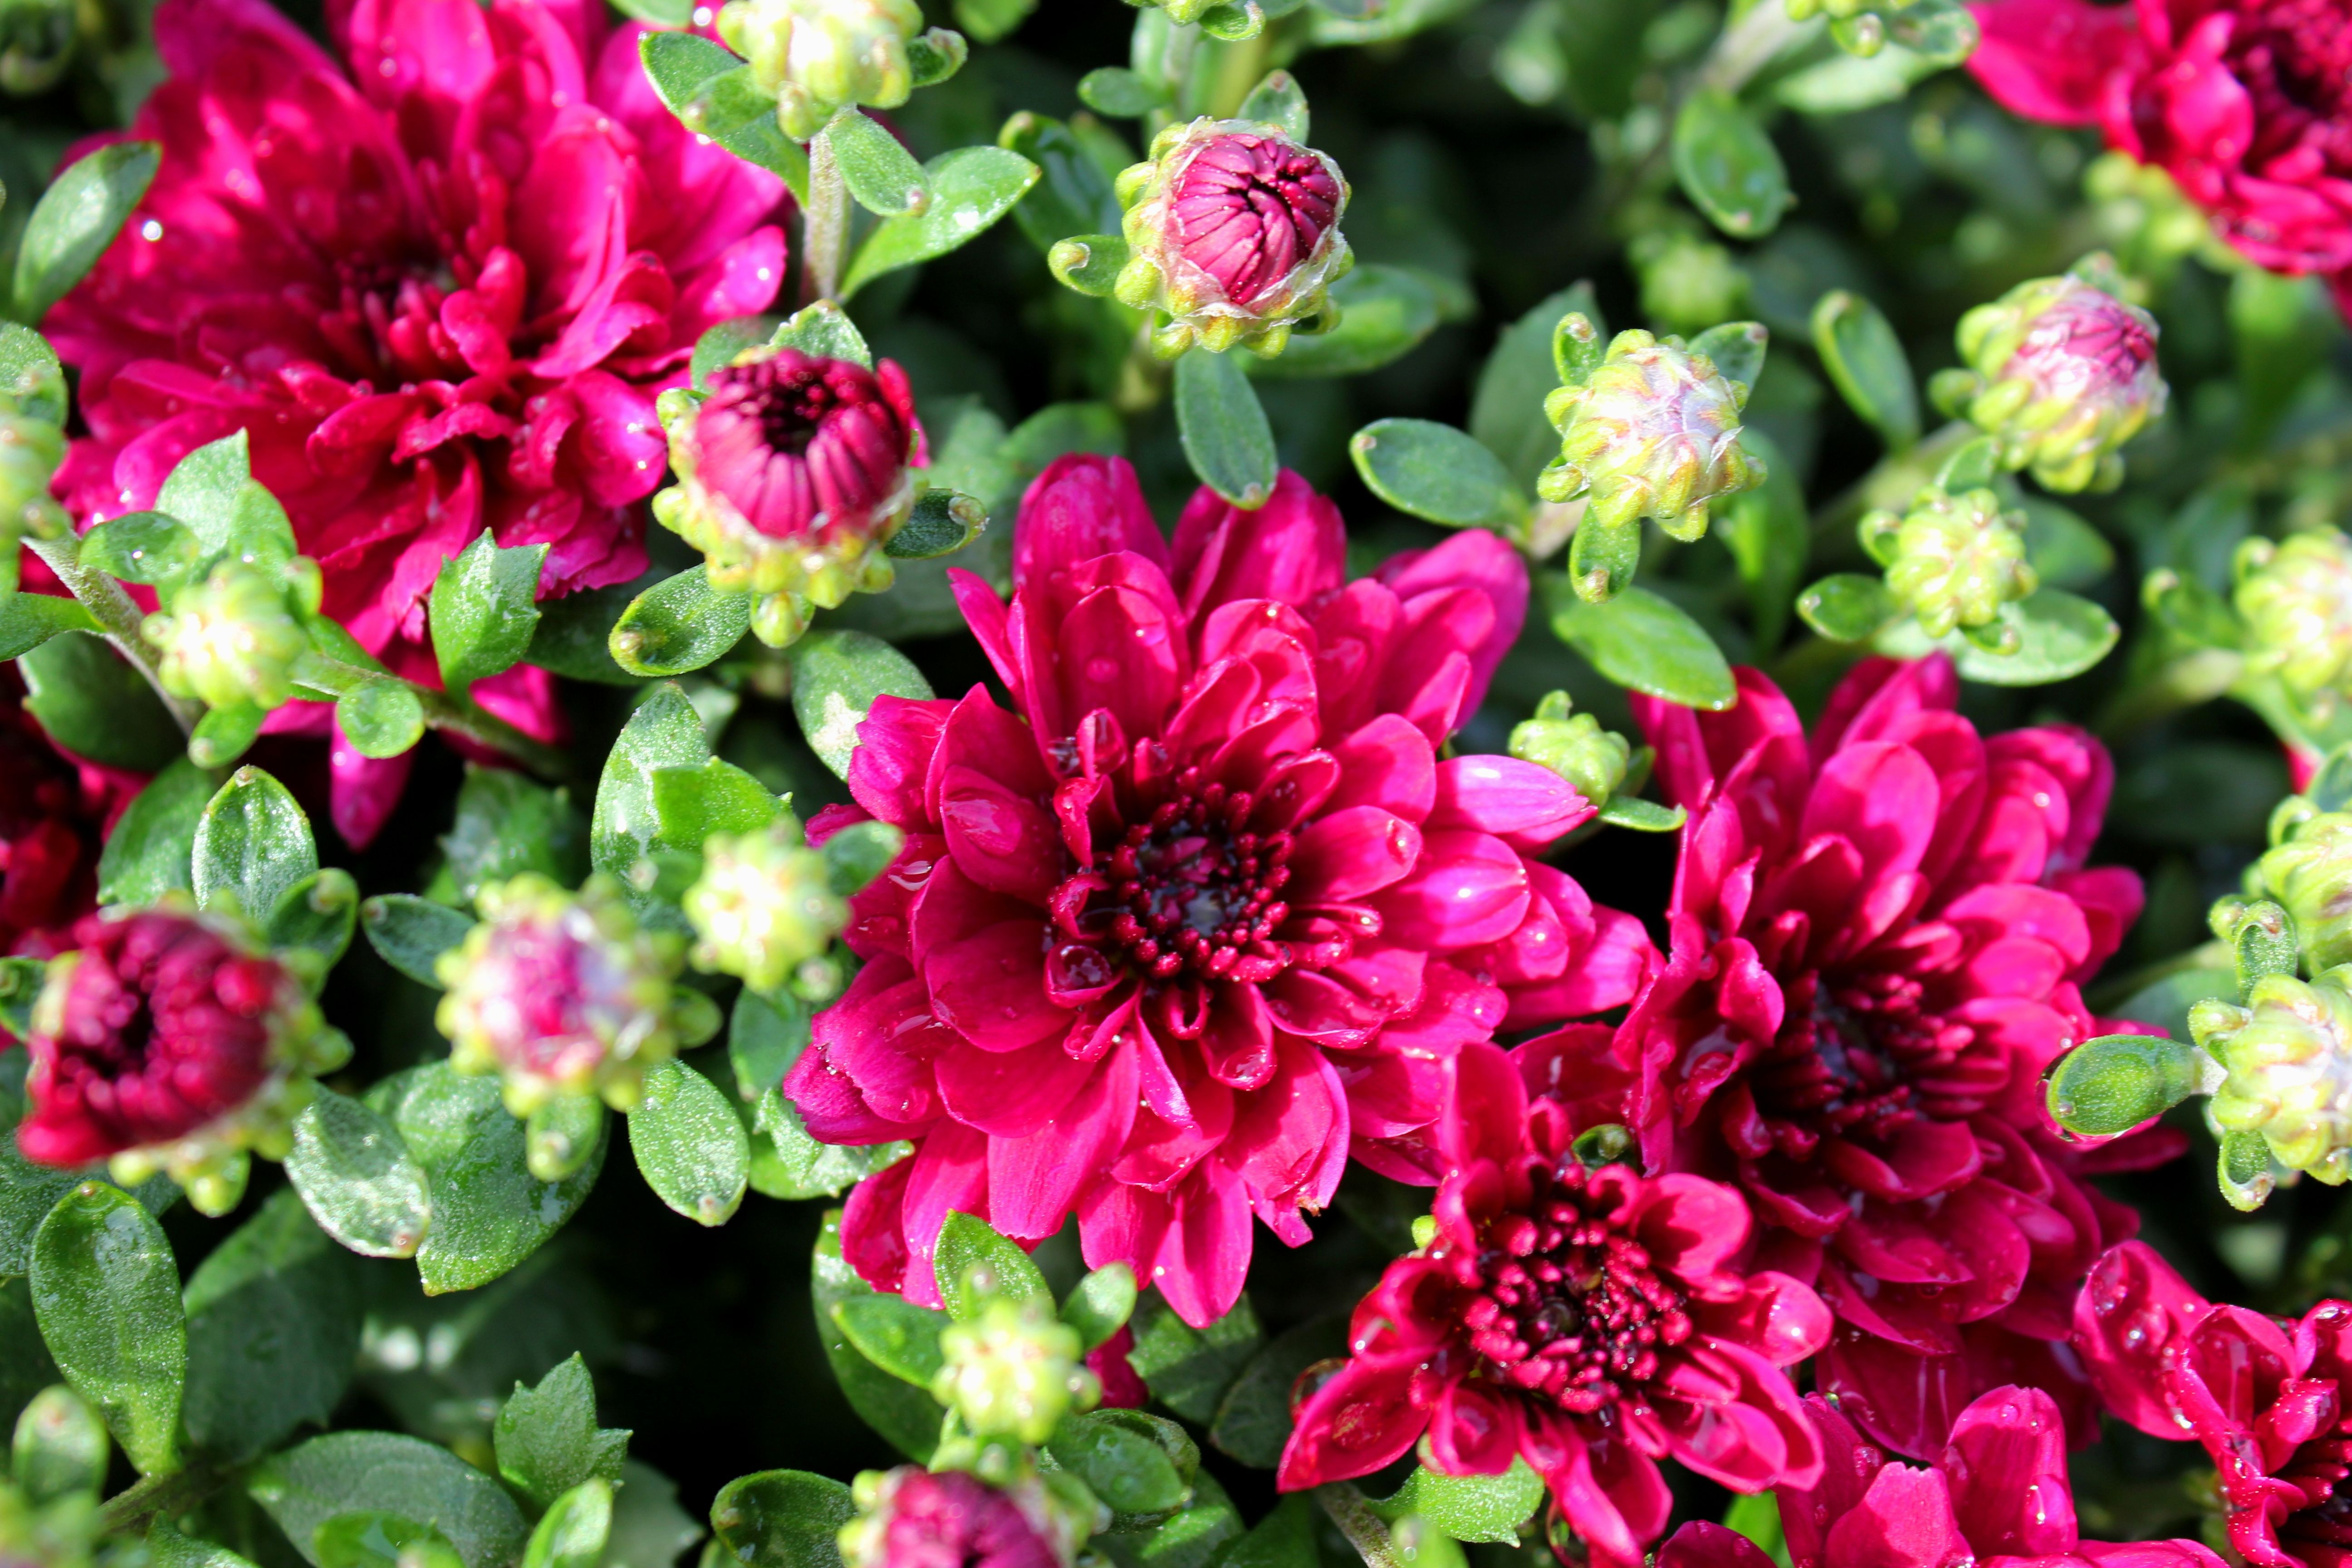 New Mums! What do you think? New mums, Perennials, Plants